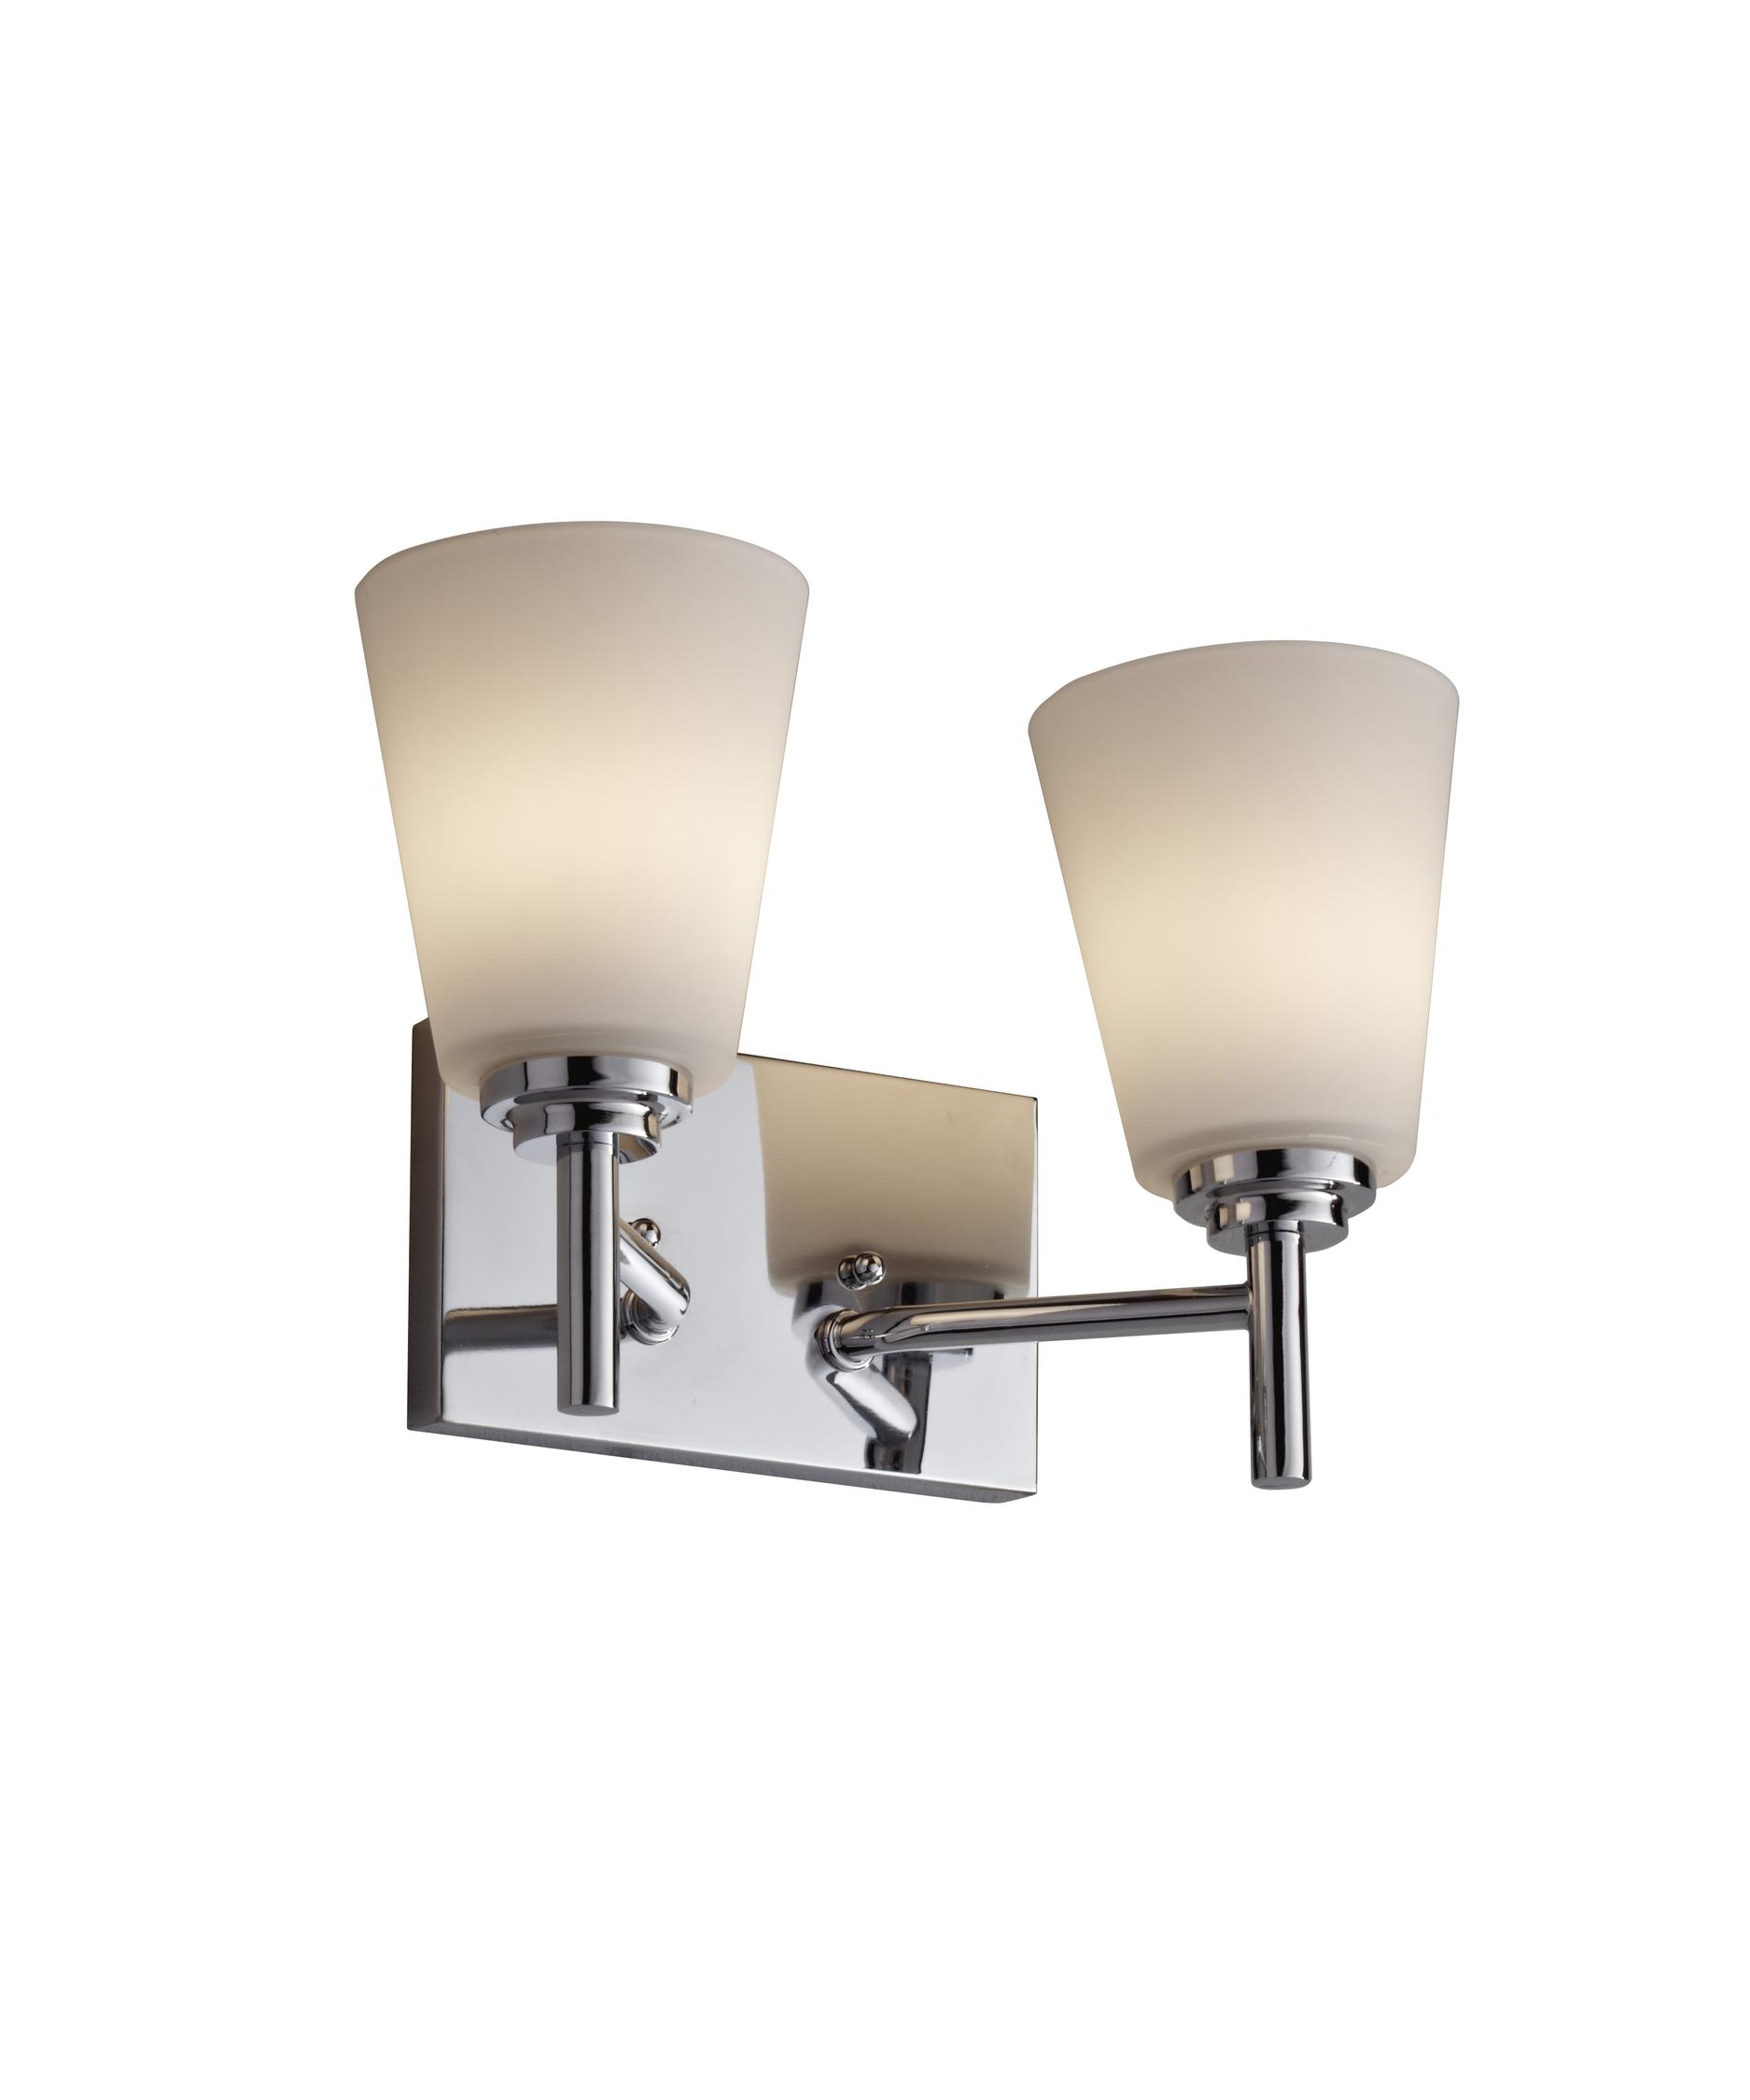 Murray Feiss Regan Bath Vanity Light Capitol Lighting 1